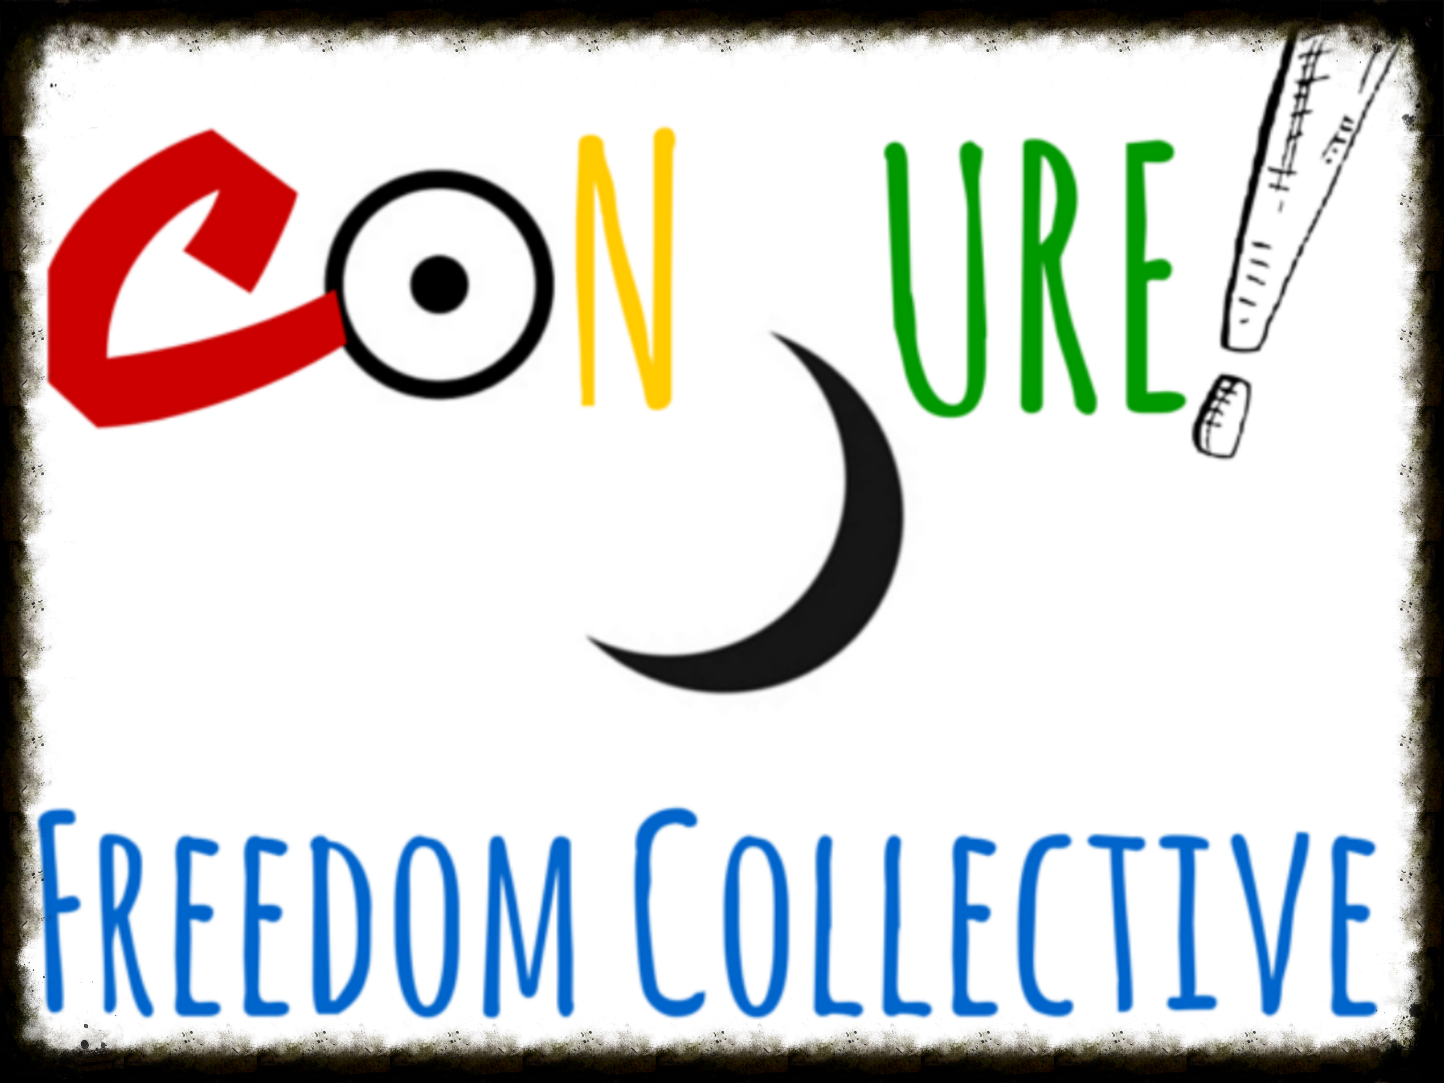 Conjure! Freedom Collective